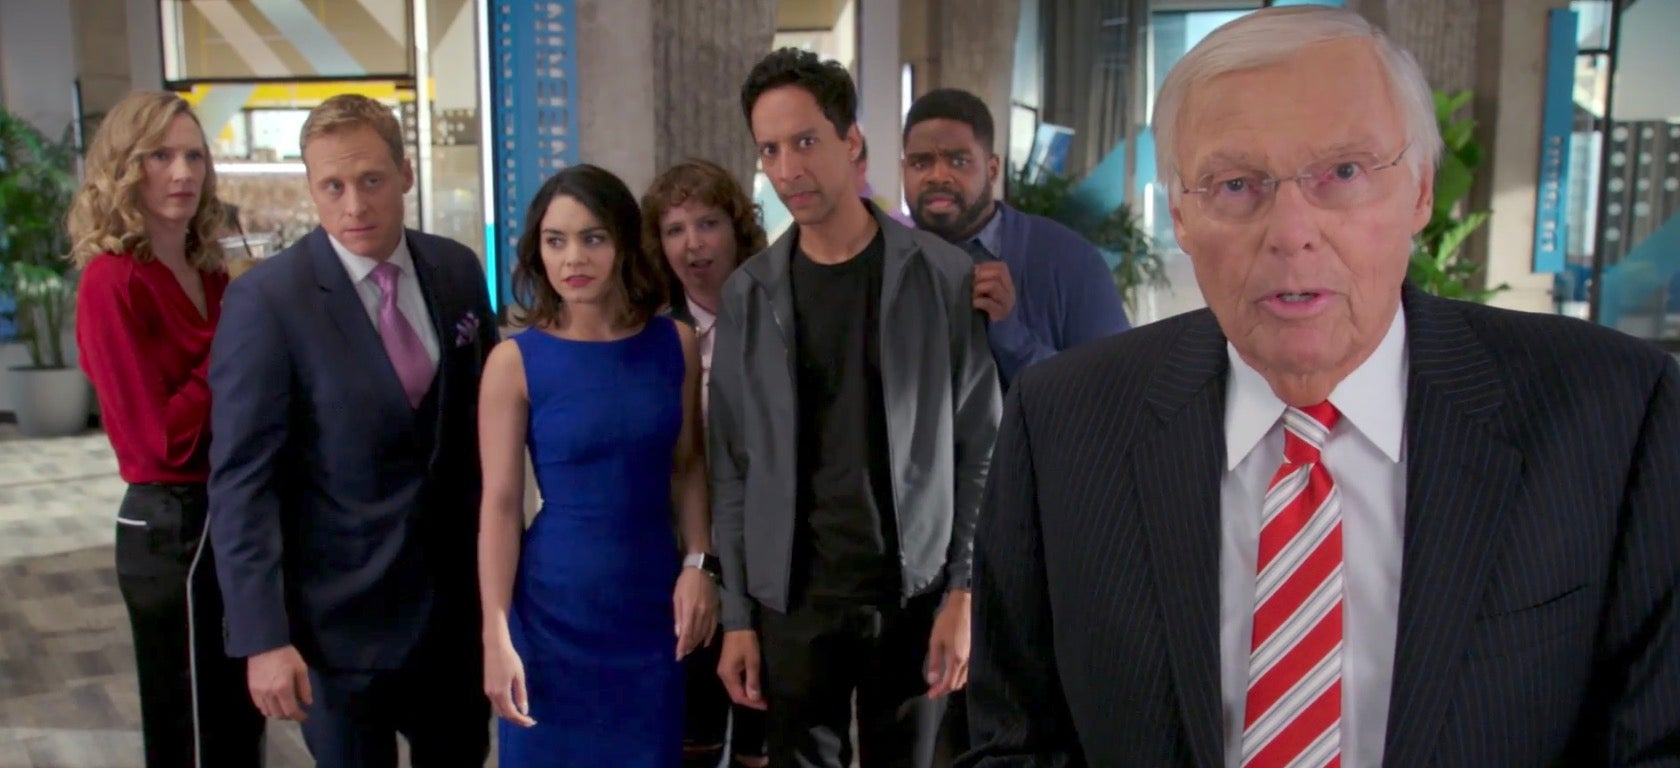 DC Just Posted An Unaired Powerless Episode Starring Adam West